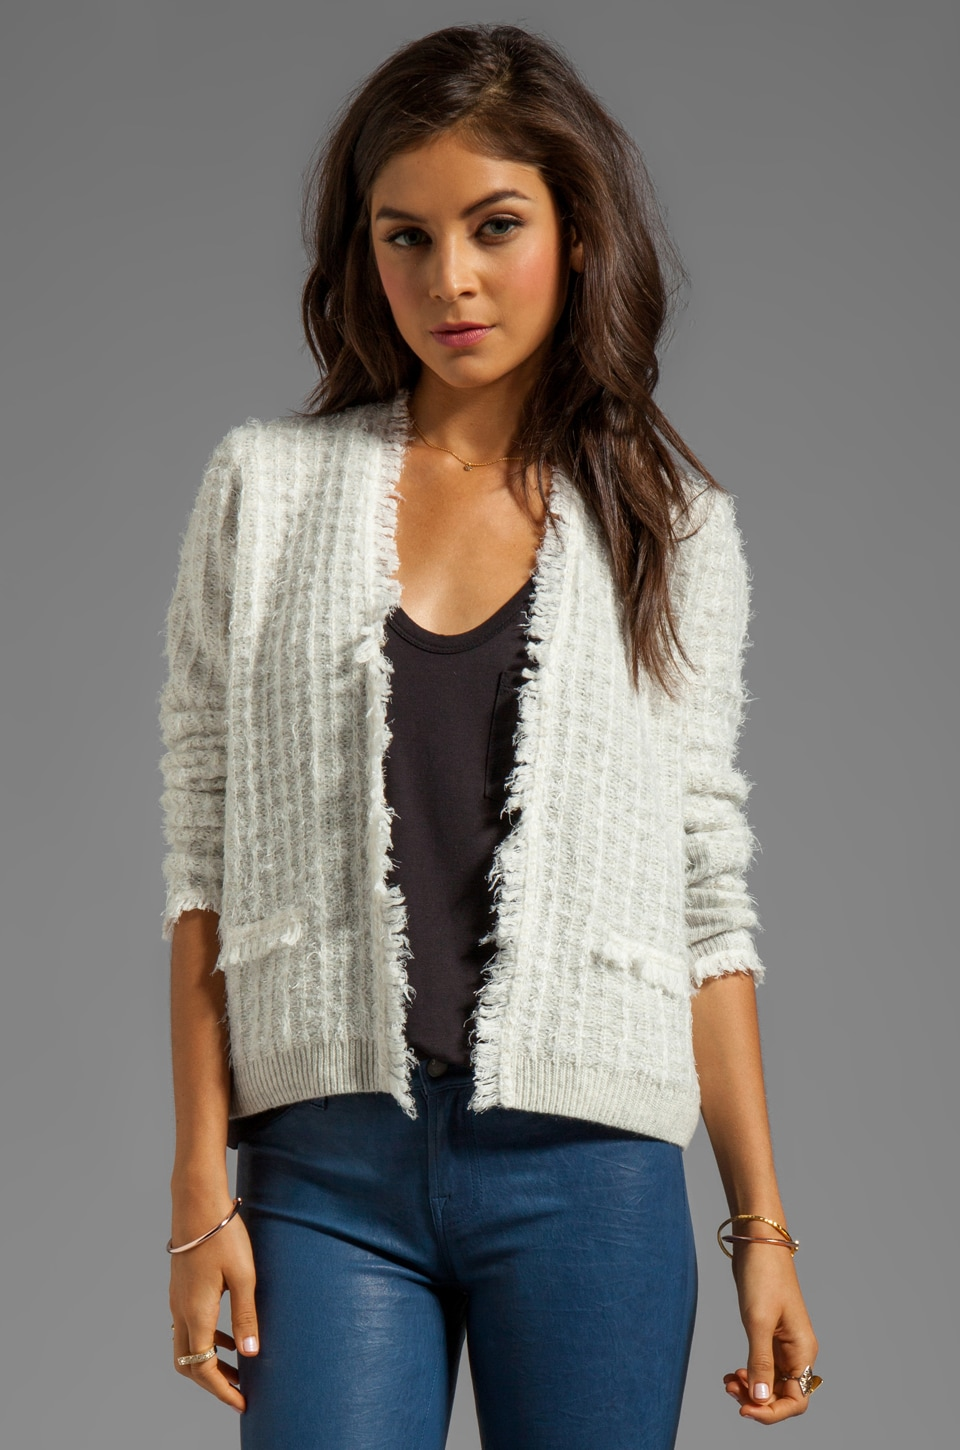 Rebecca Taylor Knit Blazer in Heather Grey/Cream